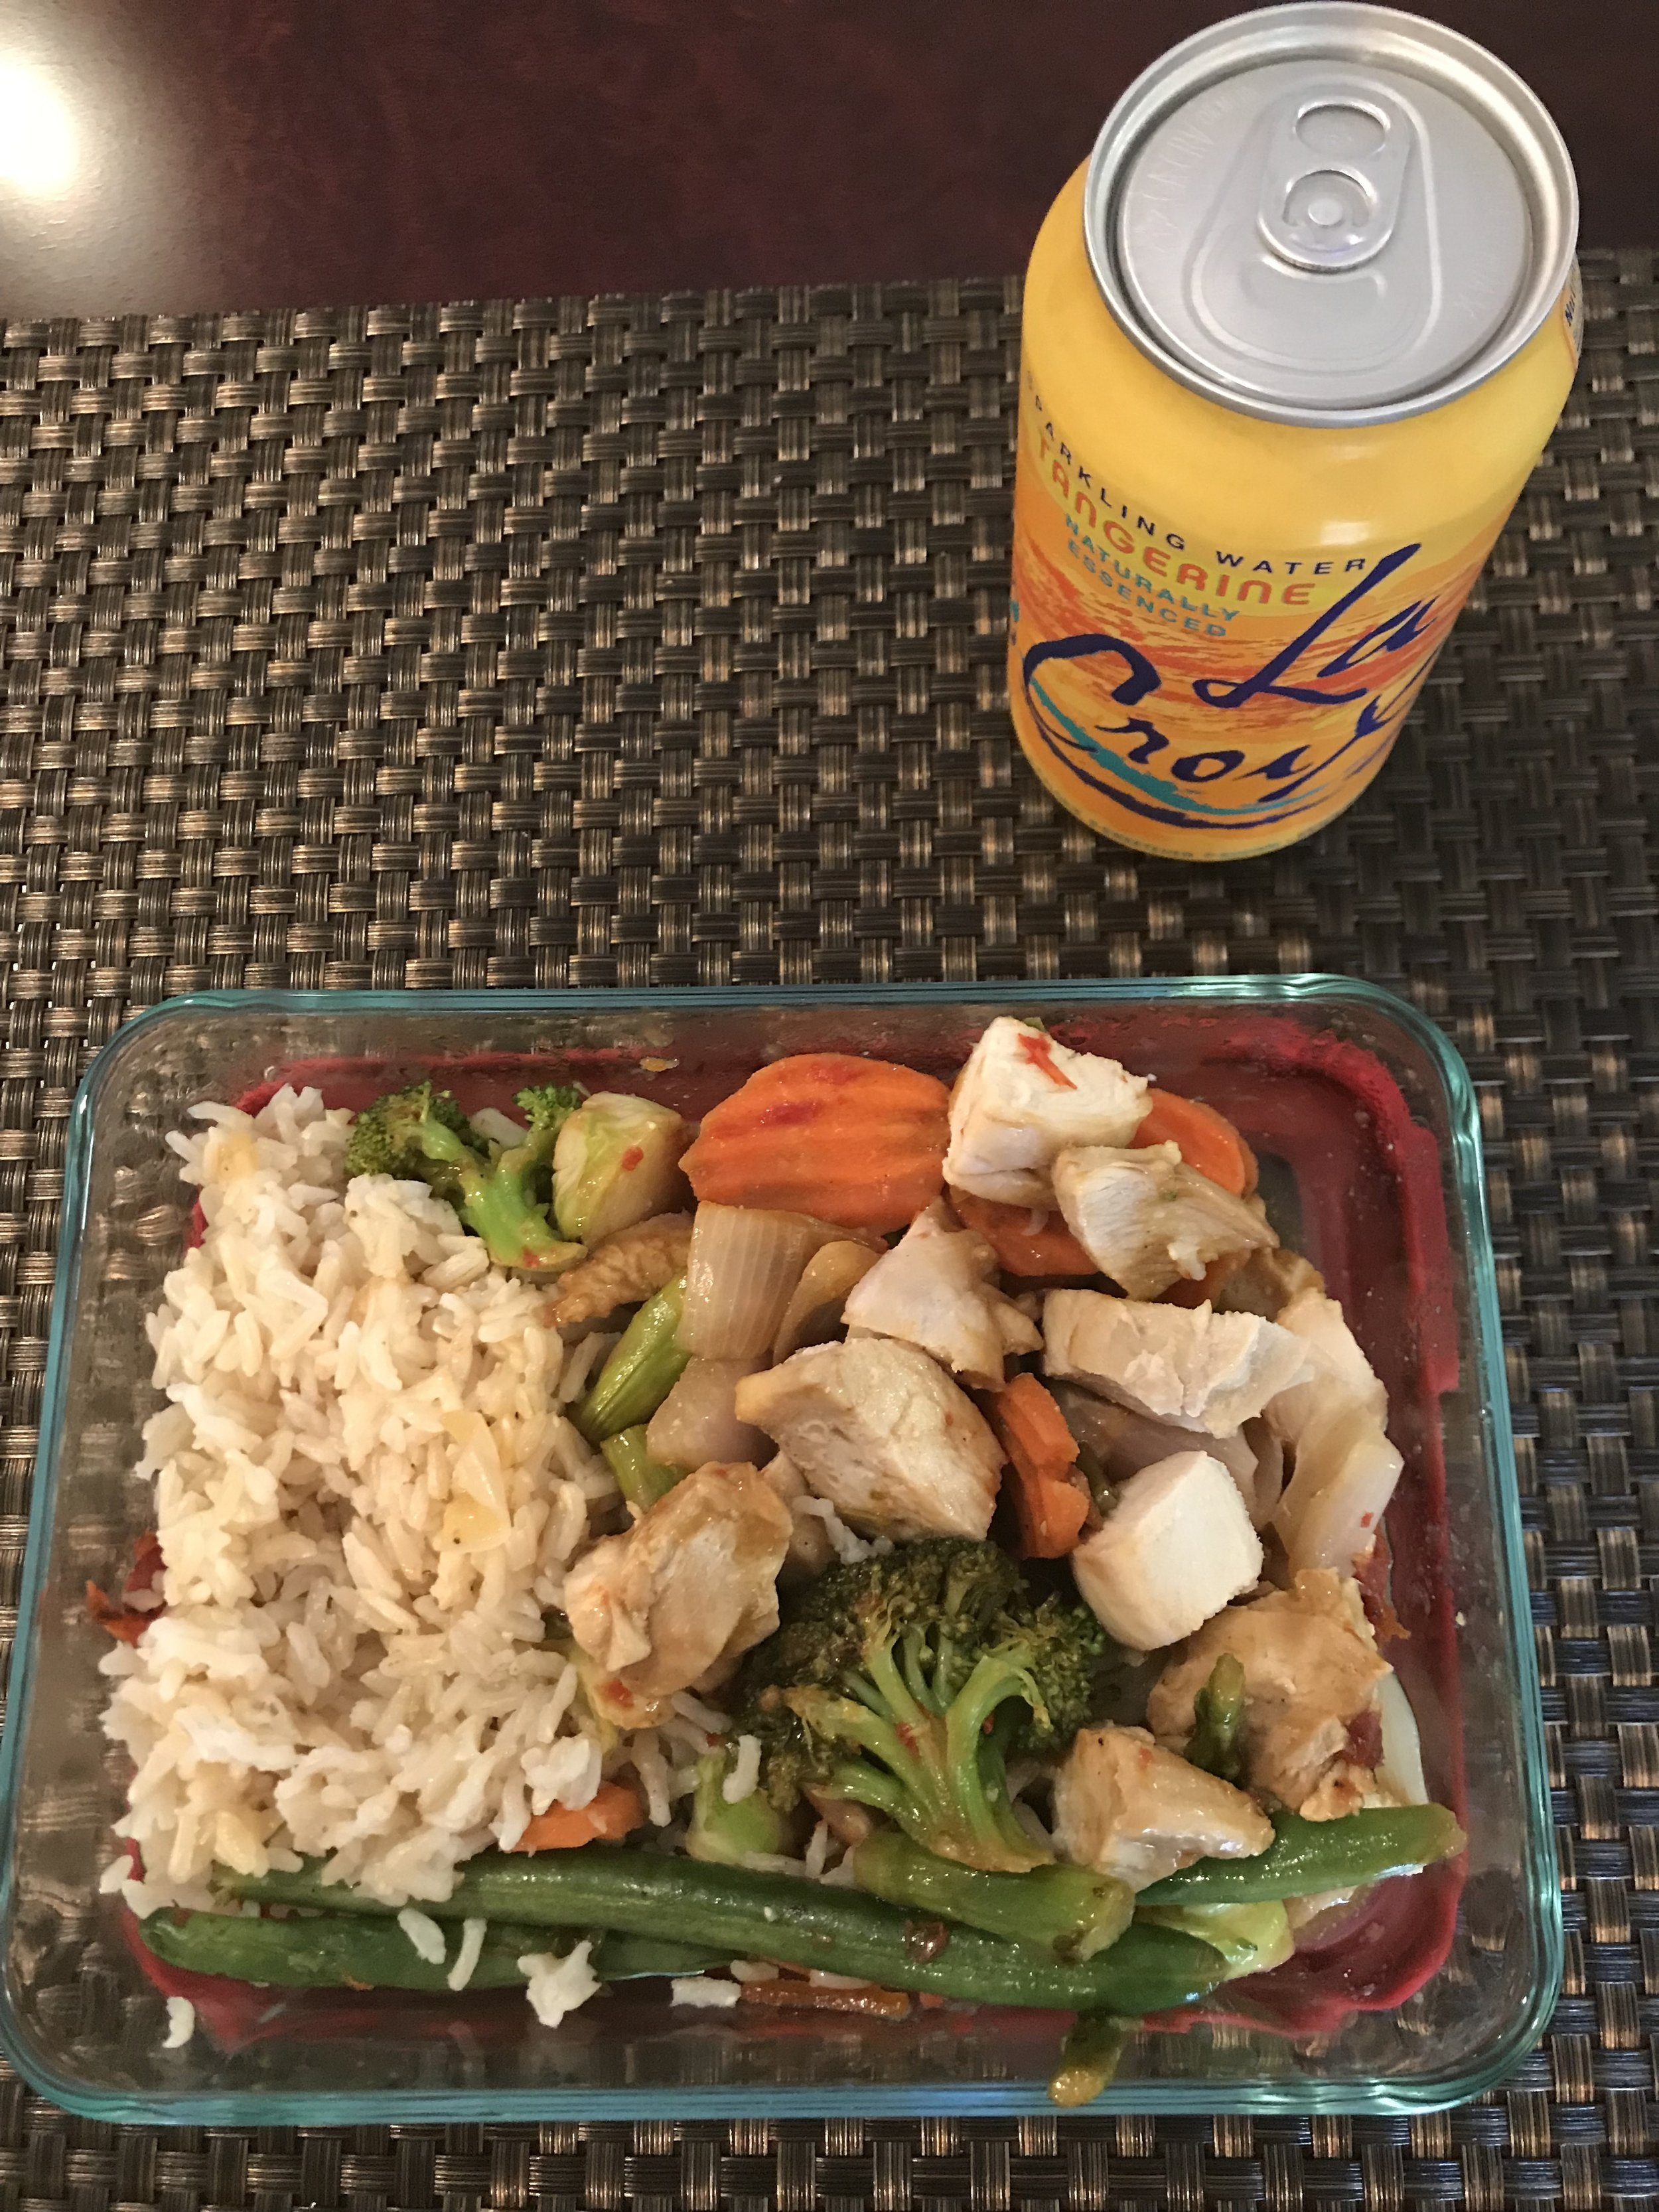 LUNCH - 4 oz of baked chicken breast, 1 cup mixed vegetables, 2 Tbsp Orange-Stir Fry Sauce, 3/4 cup brown rice, and 12 oz can of Le Croix Sparkling Water.